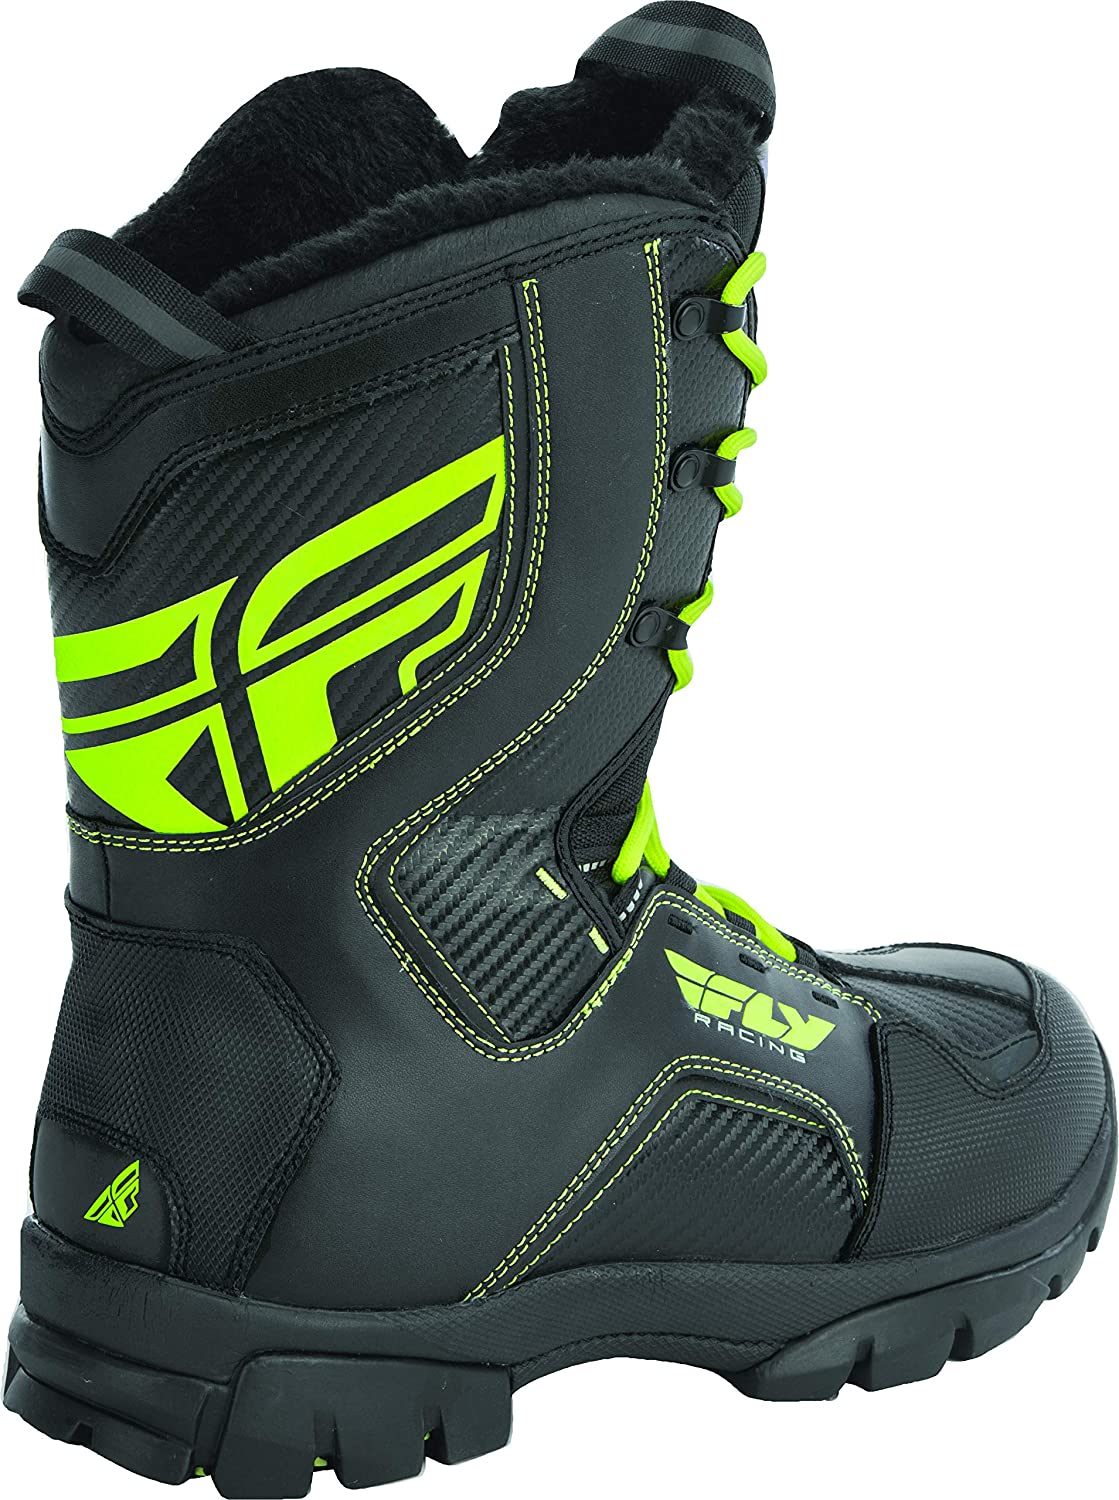 Fly Racing Marker Boots Black Sz 11